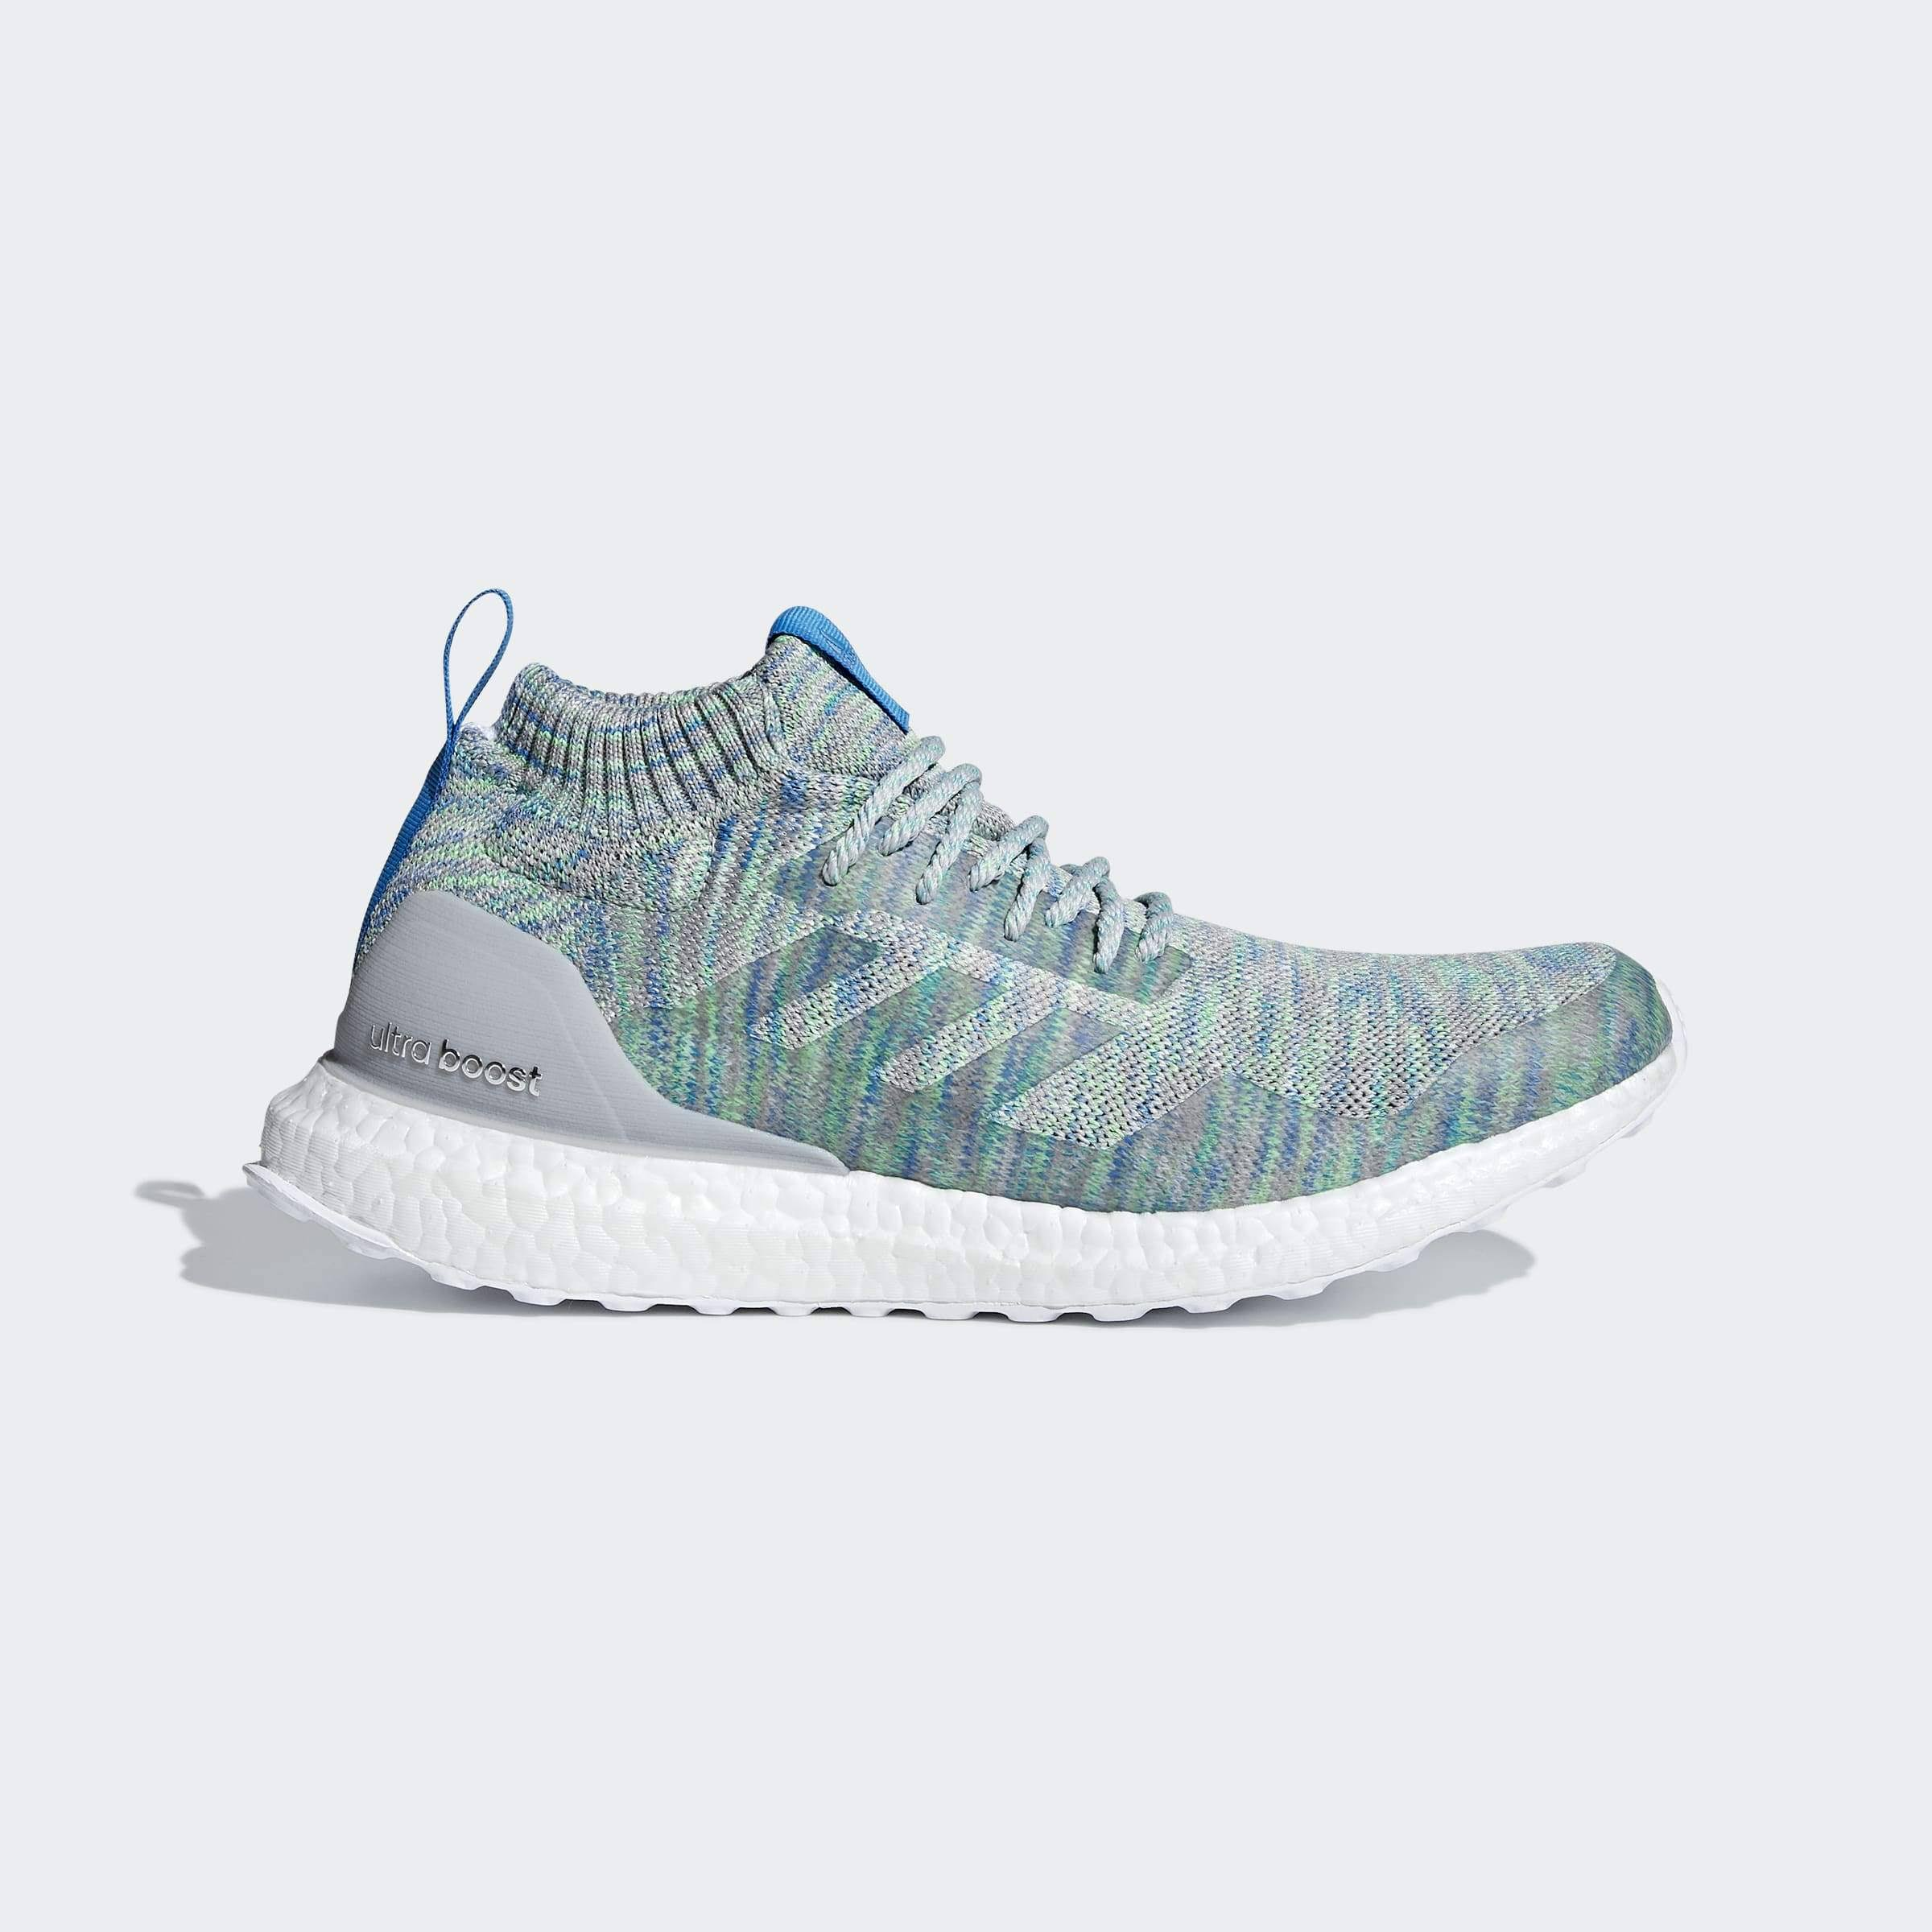 Adidas Ultra Boost Mid Multi-Color Grey - G26844 - Shoes 9